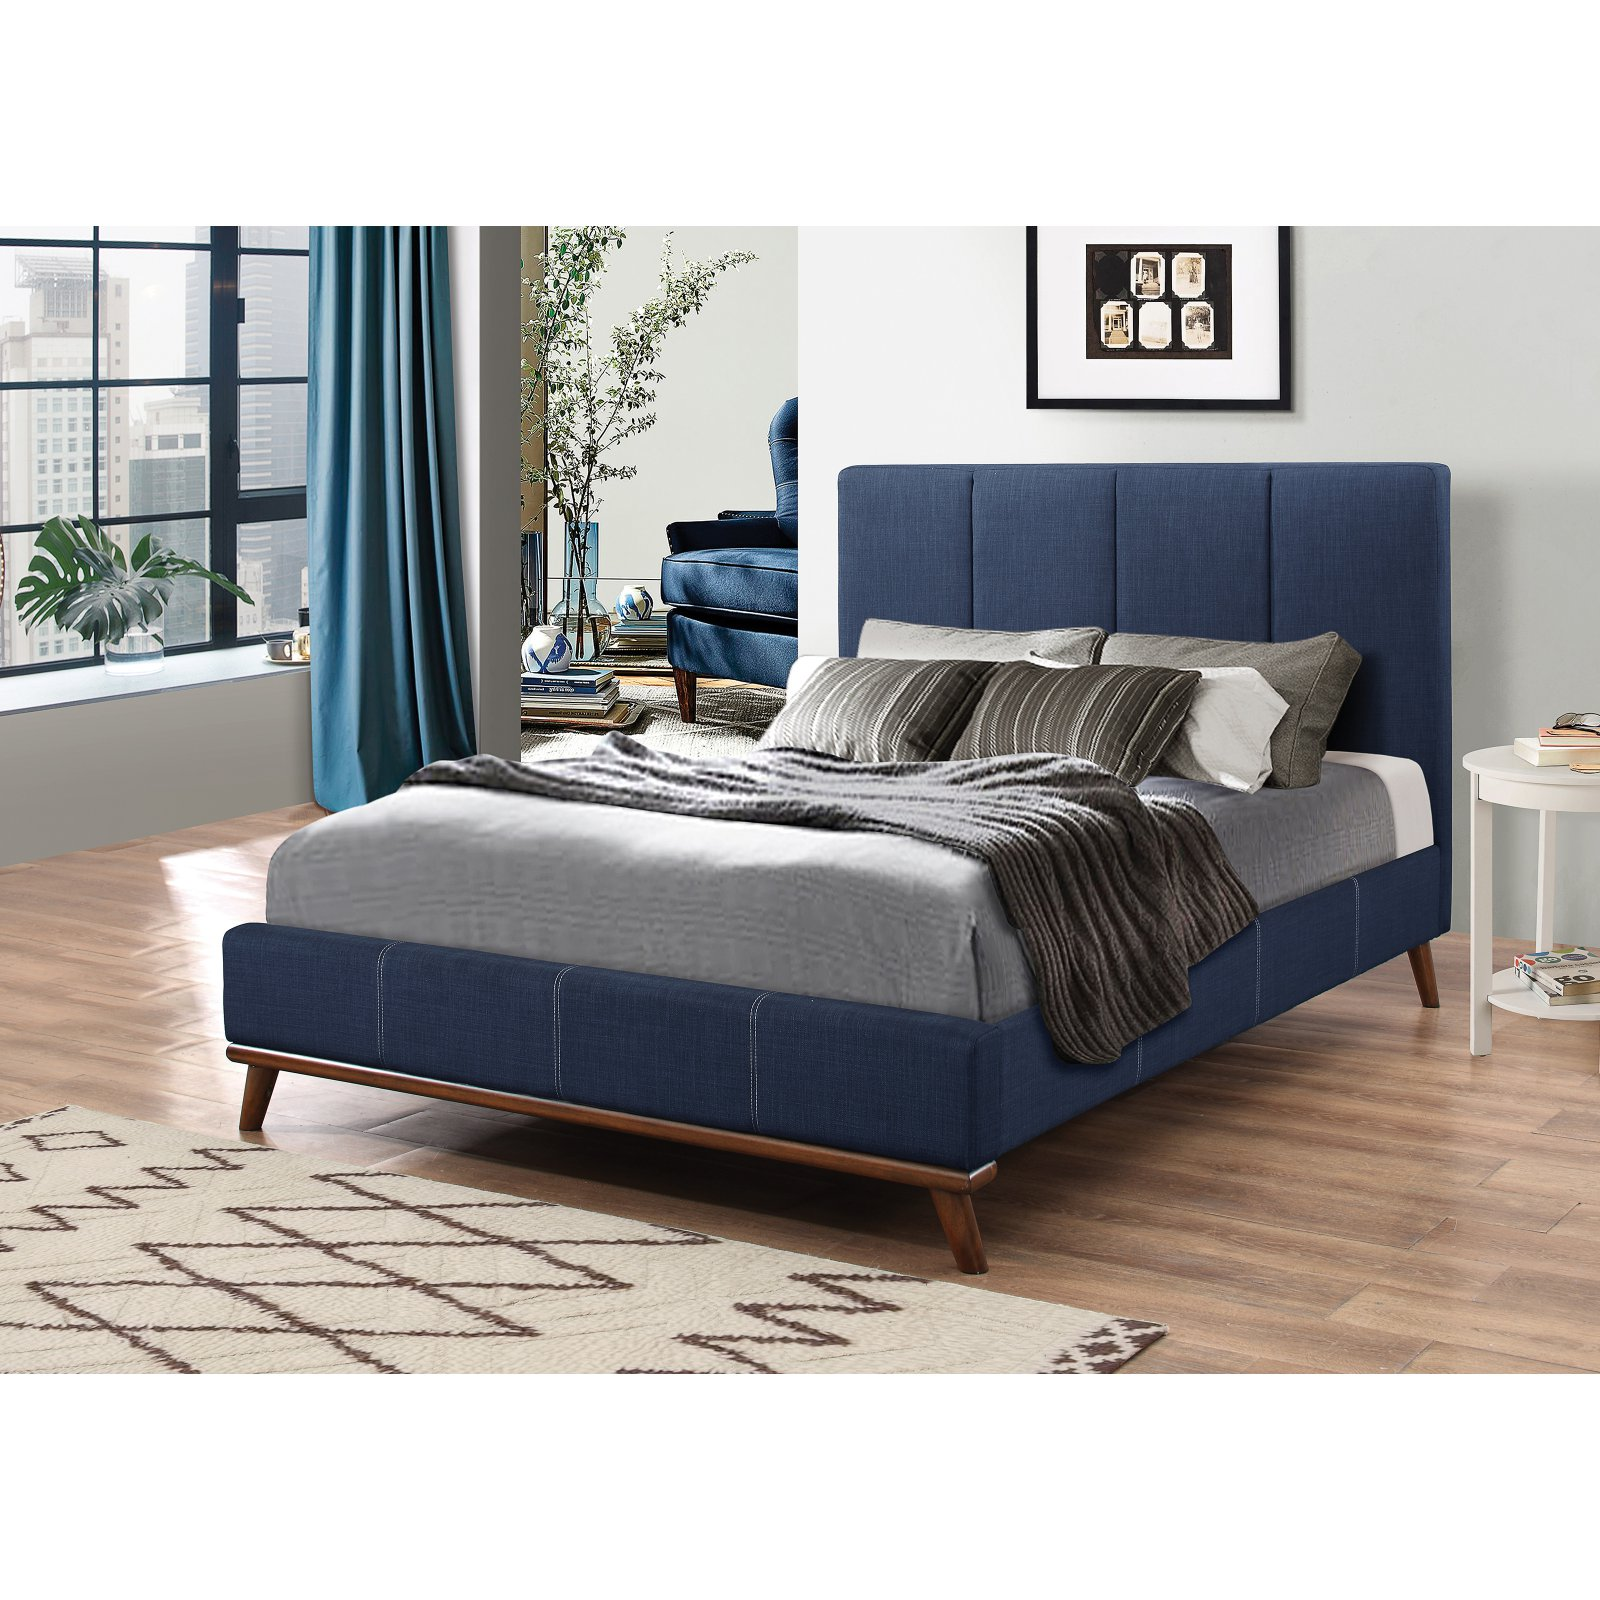 Coaster Furniture Charity Upholstered Bed